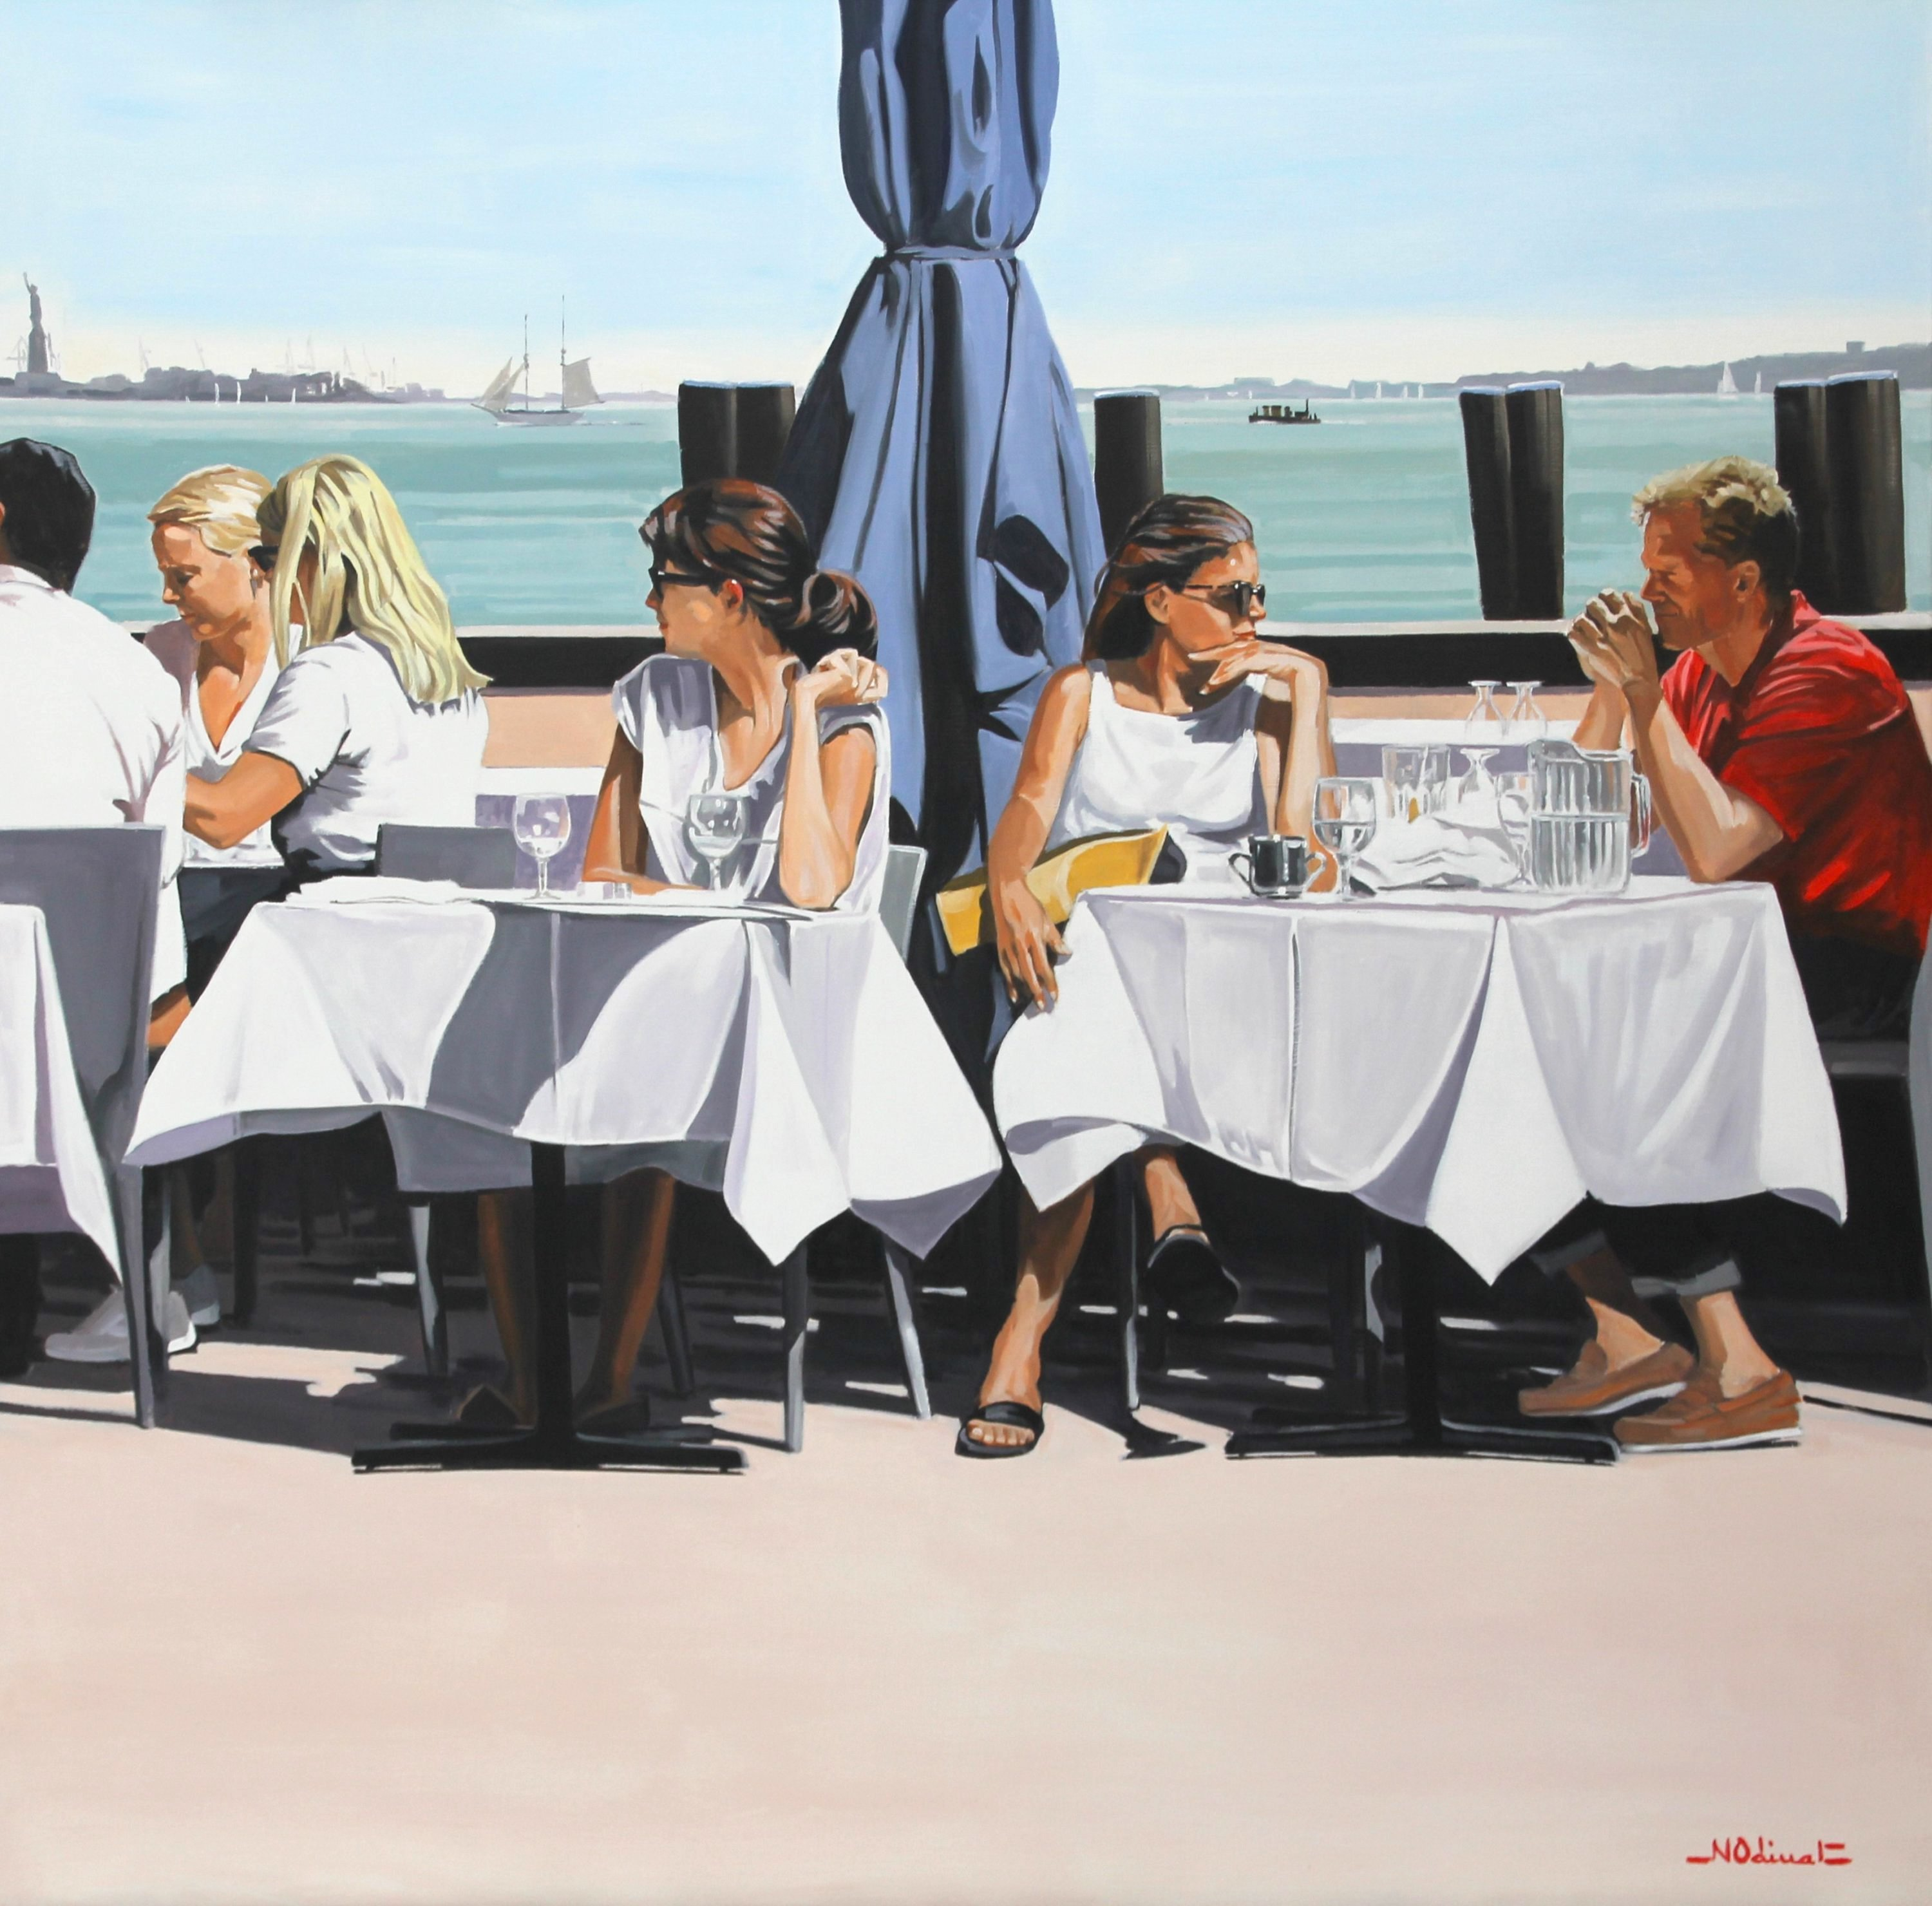 Nicolas Odinet - Lunch in the sunshine